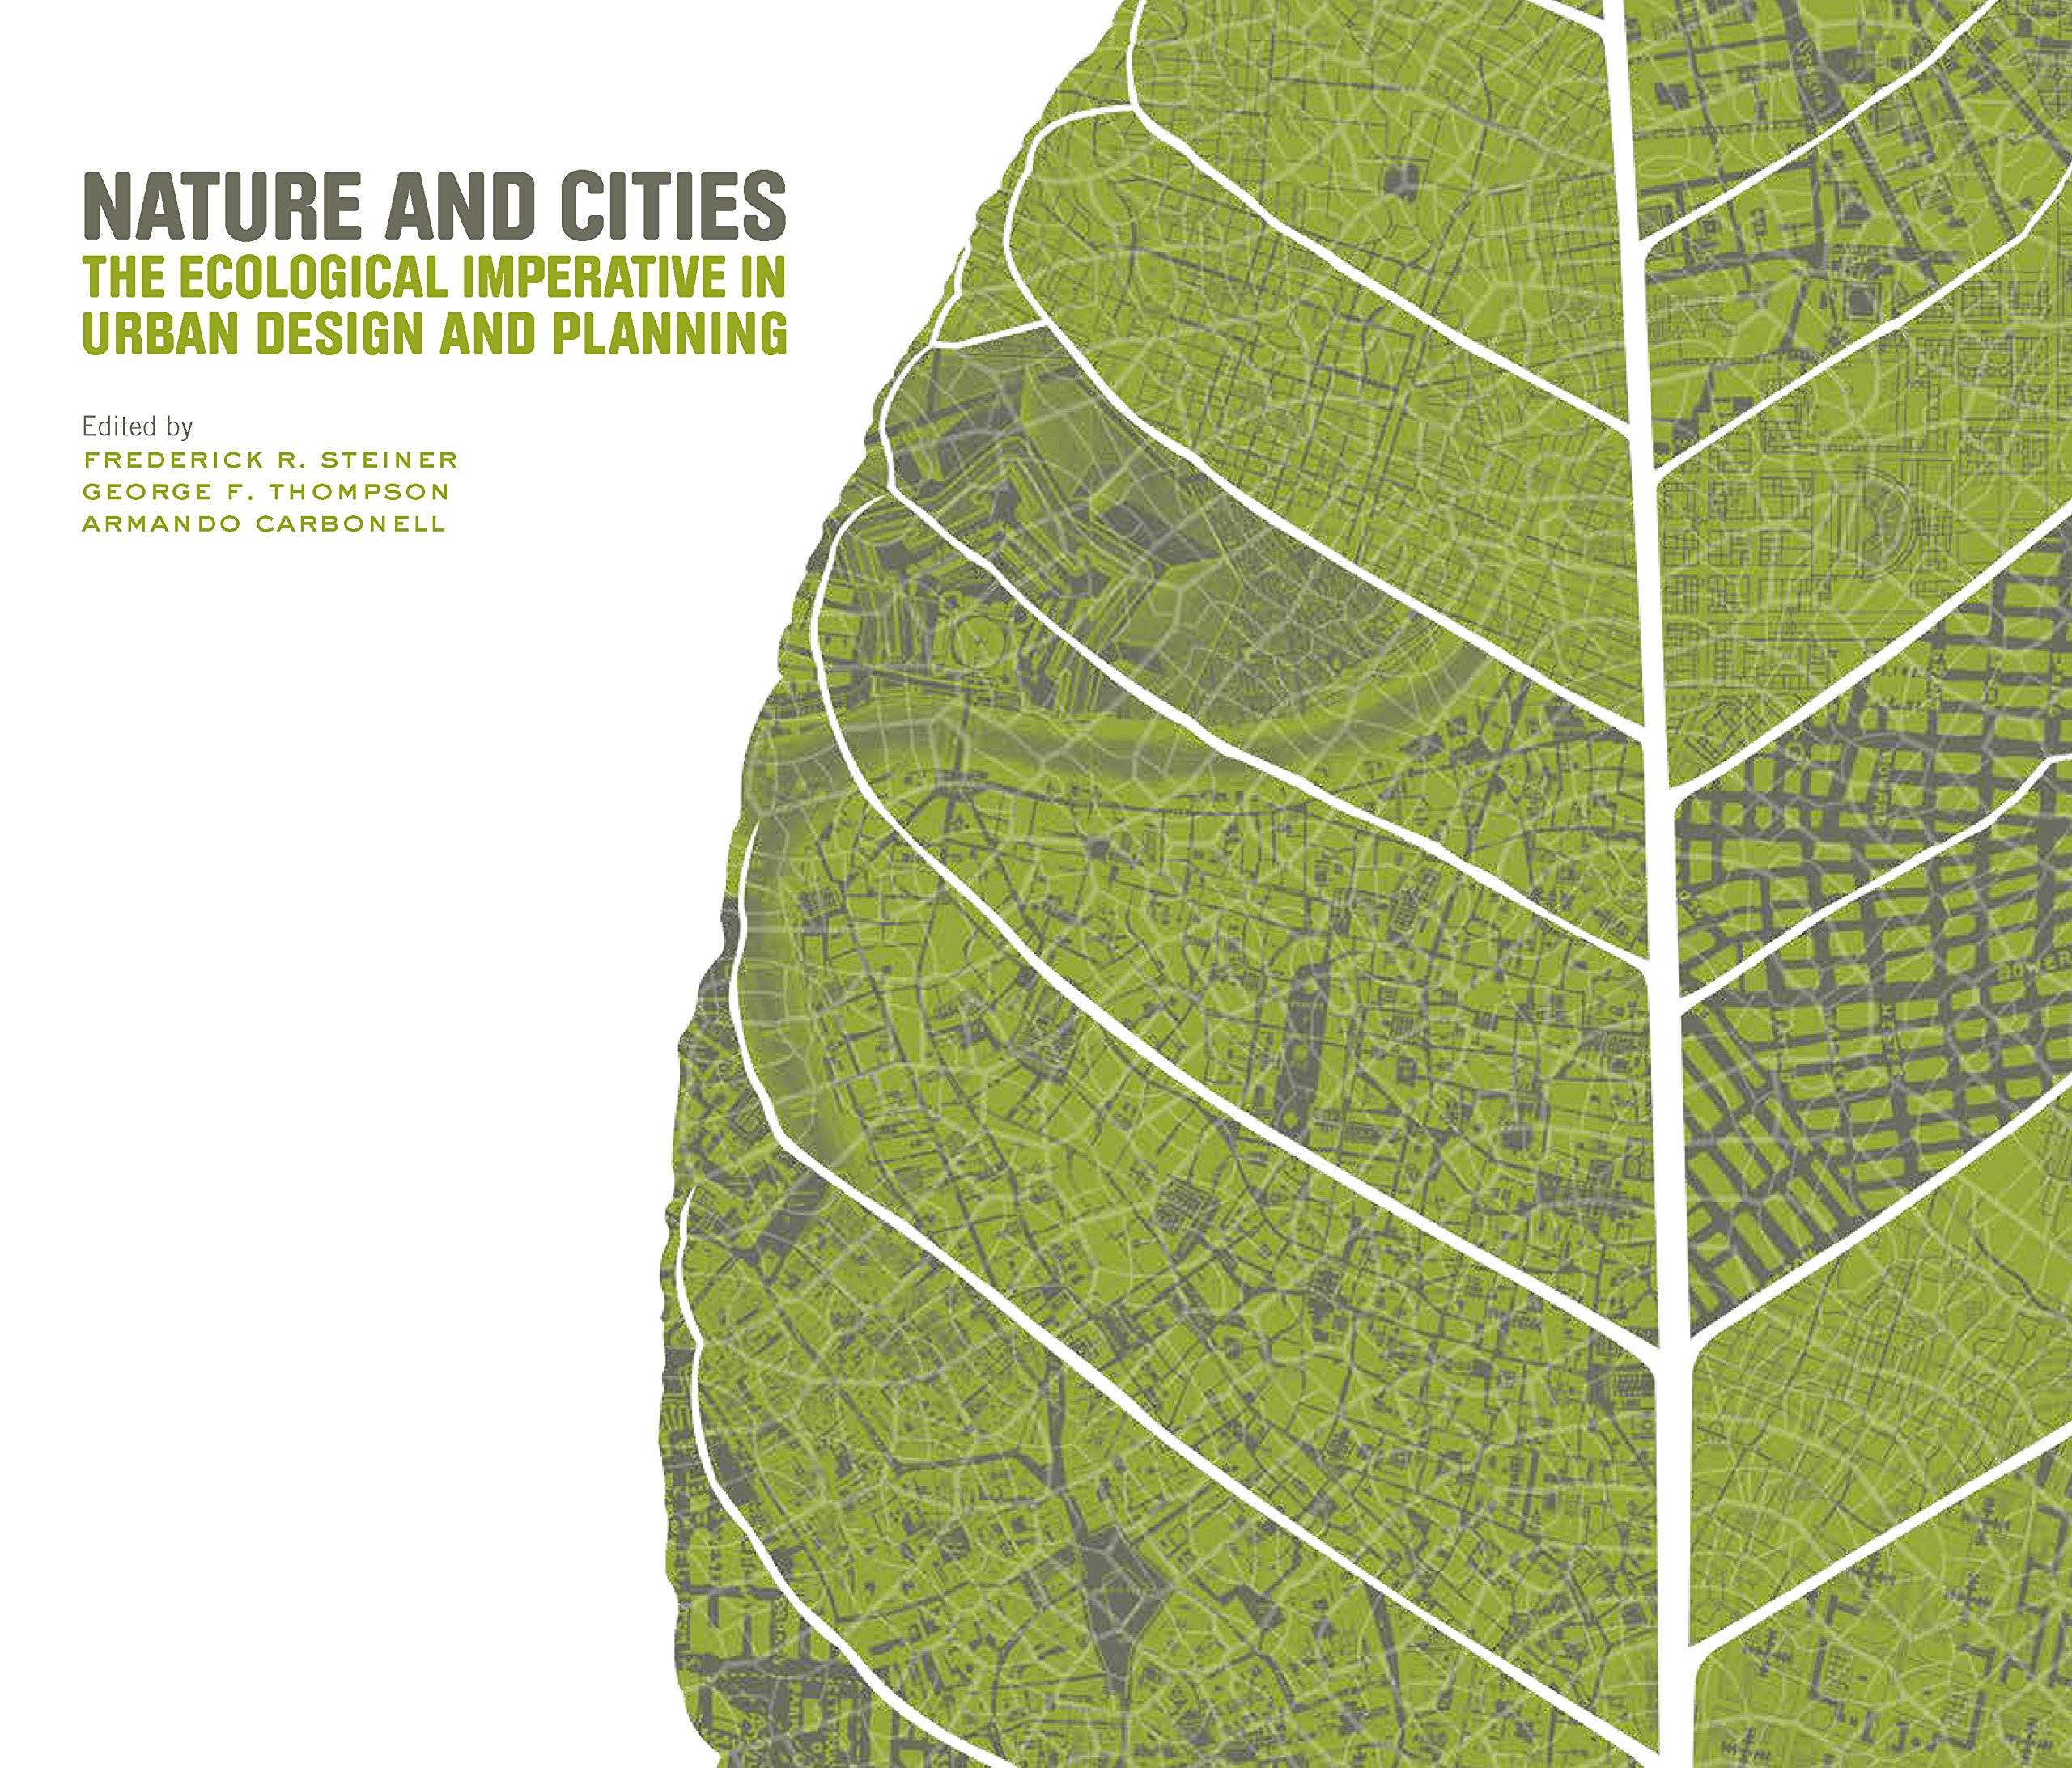 amazon nature and cities the ecological imperative in urban